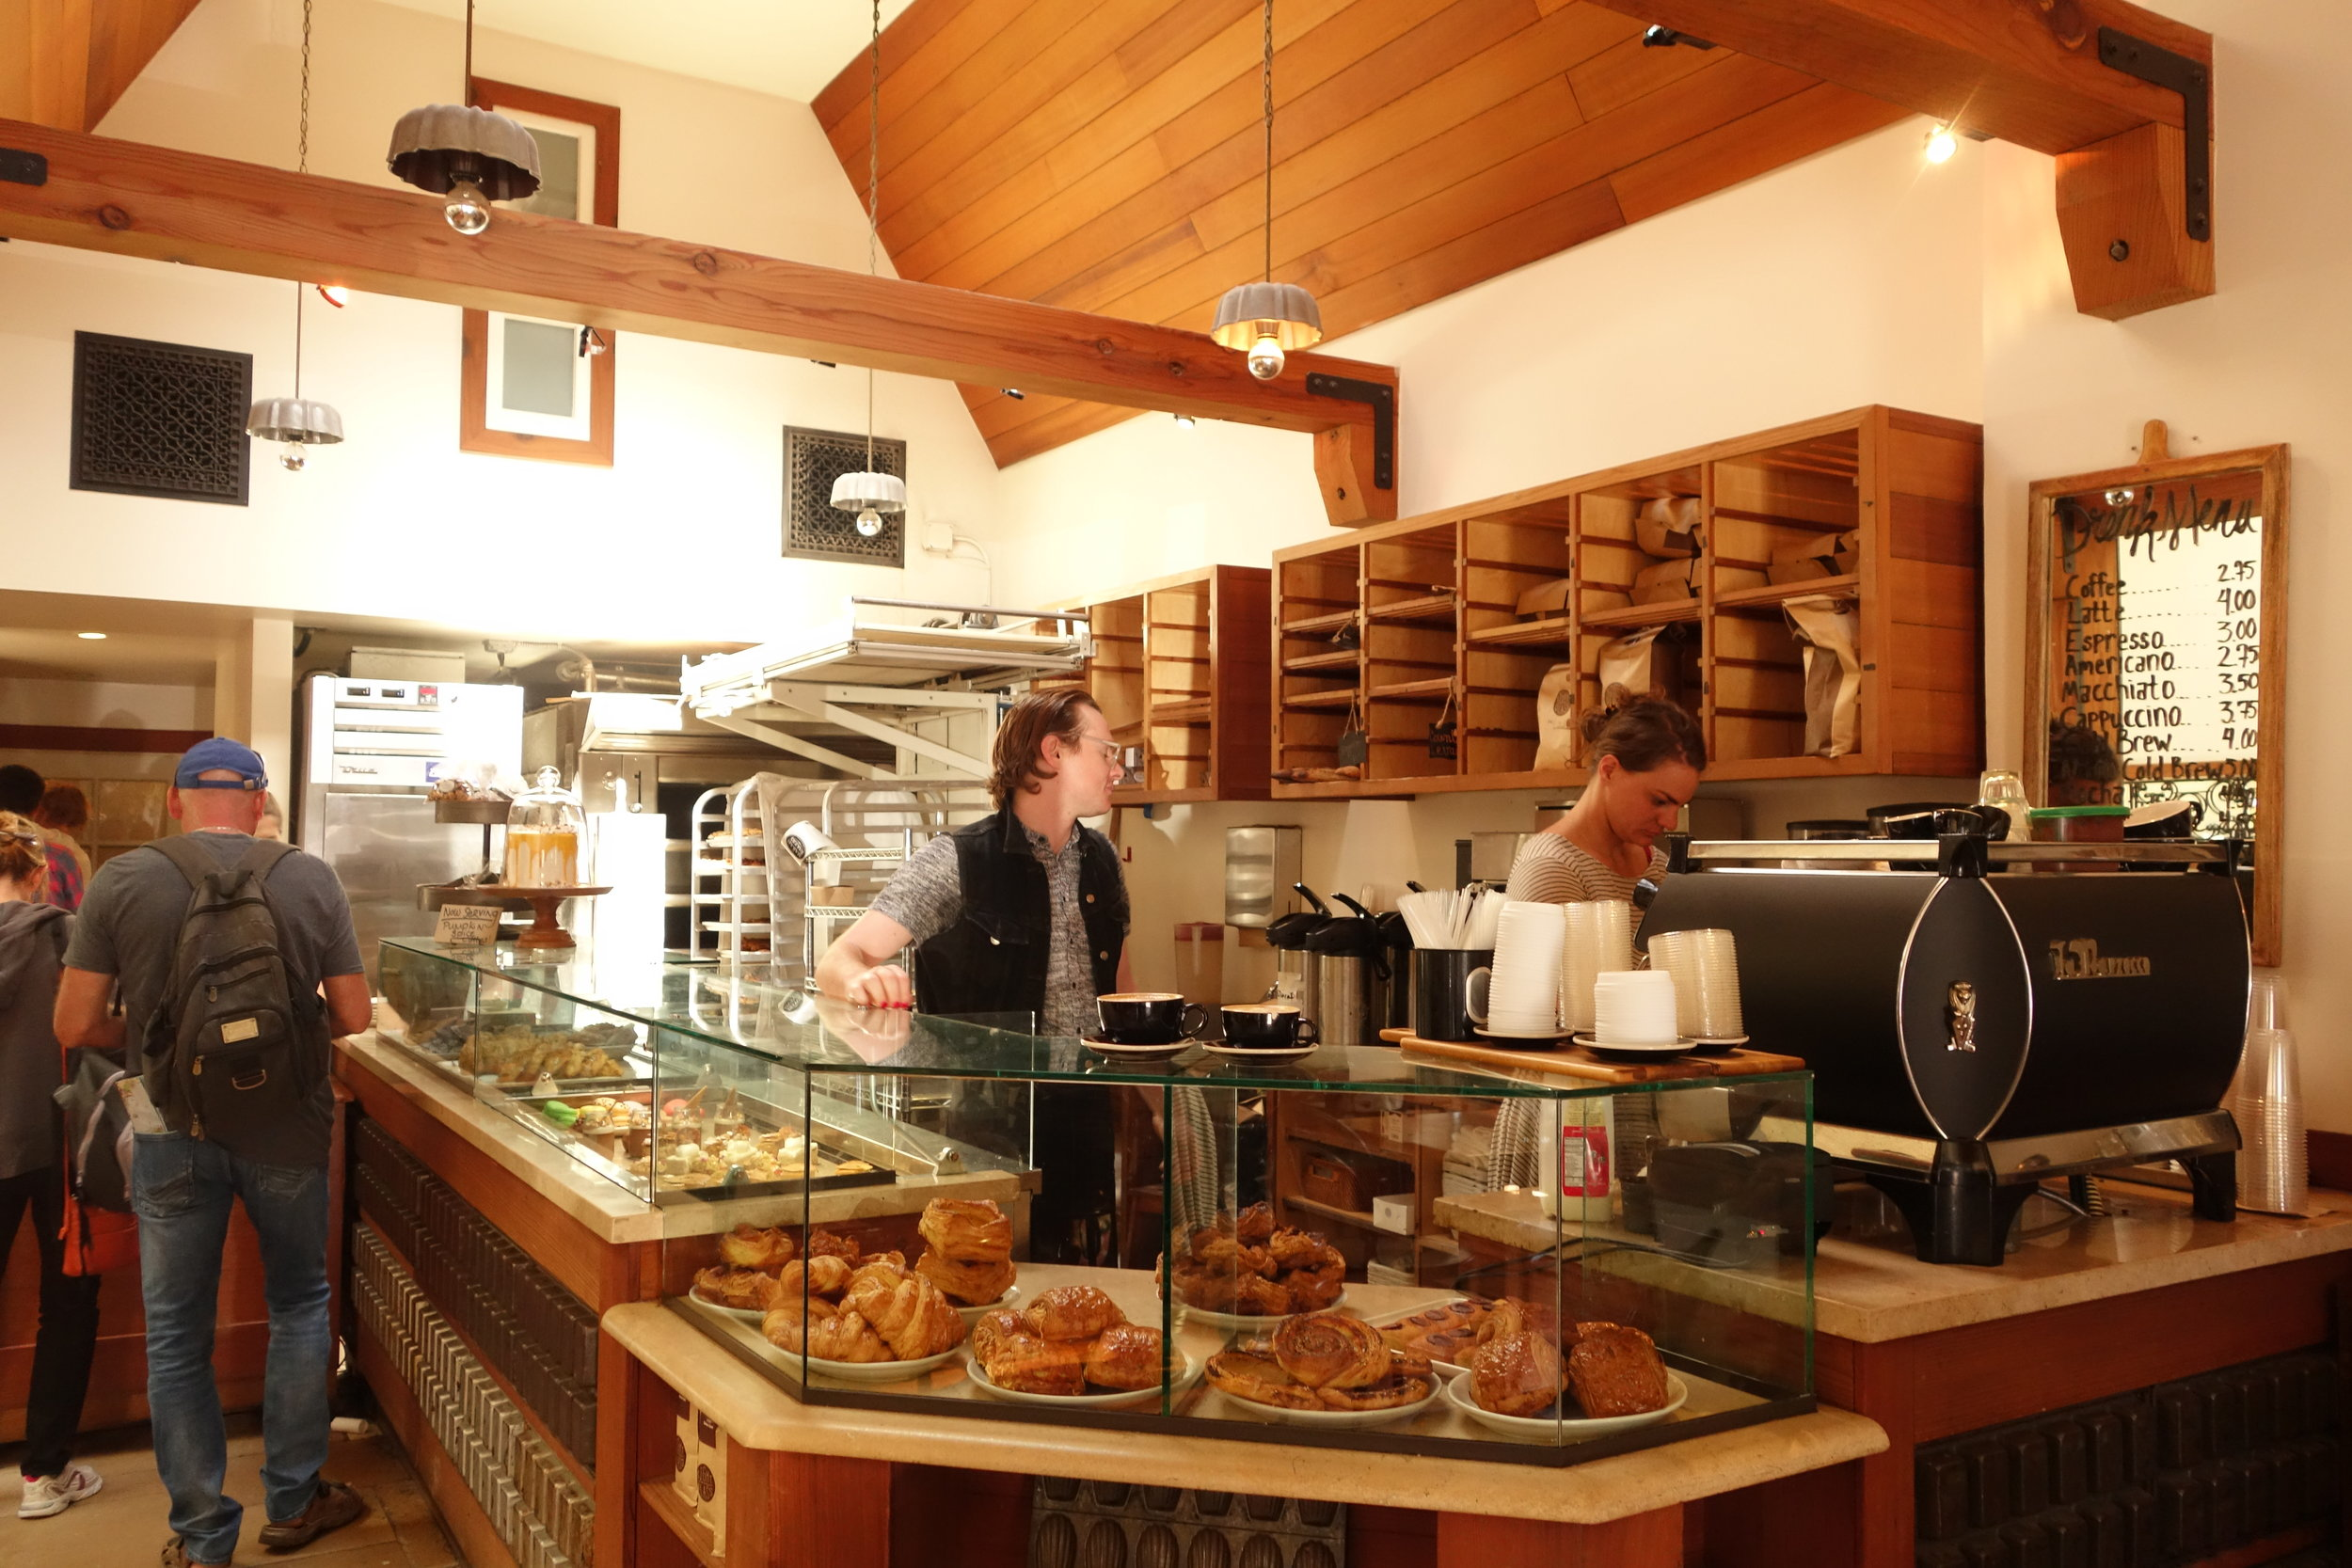 le-marais-bakery-and-bistro-marina-sf-san-francisco-sf-food-photography-sandy-by-the-bay-blog-17